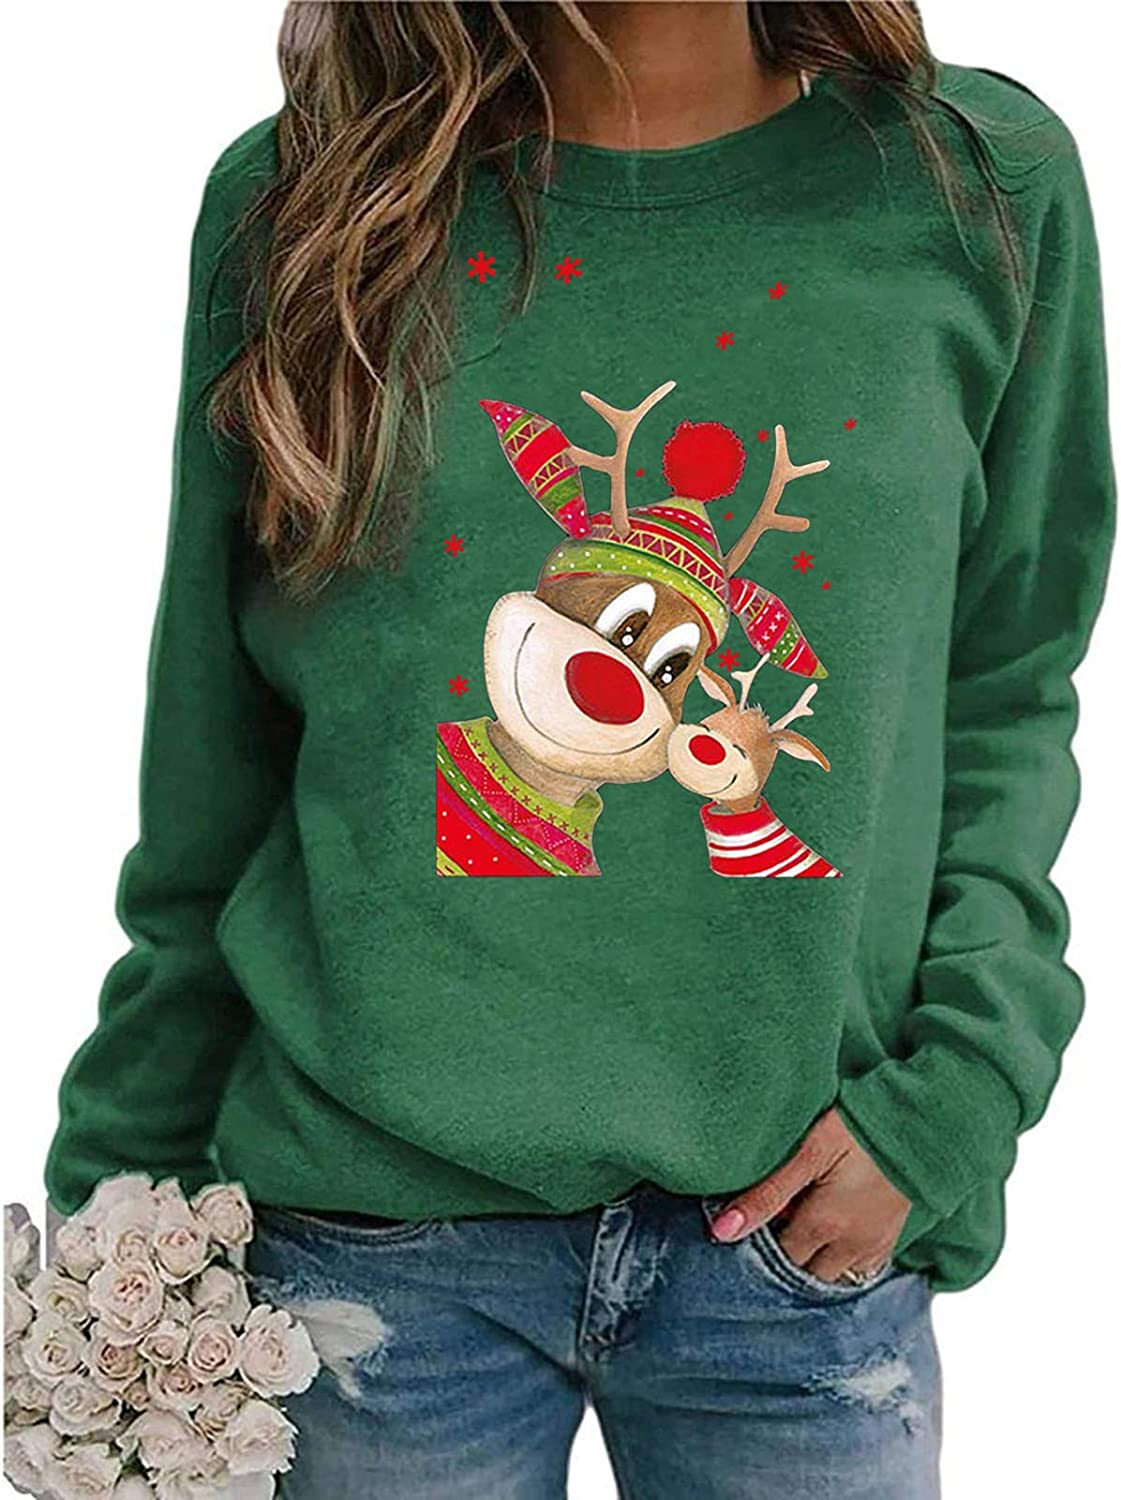 Womens Long Sleeve Tops,Christmas Long Sleeve Tops Santa Printed Pullover Loose Oversized T-Shirt Blouse with Pockets Green